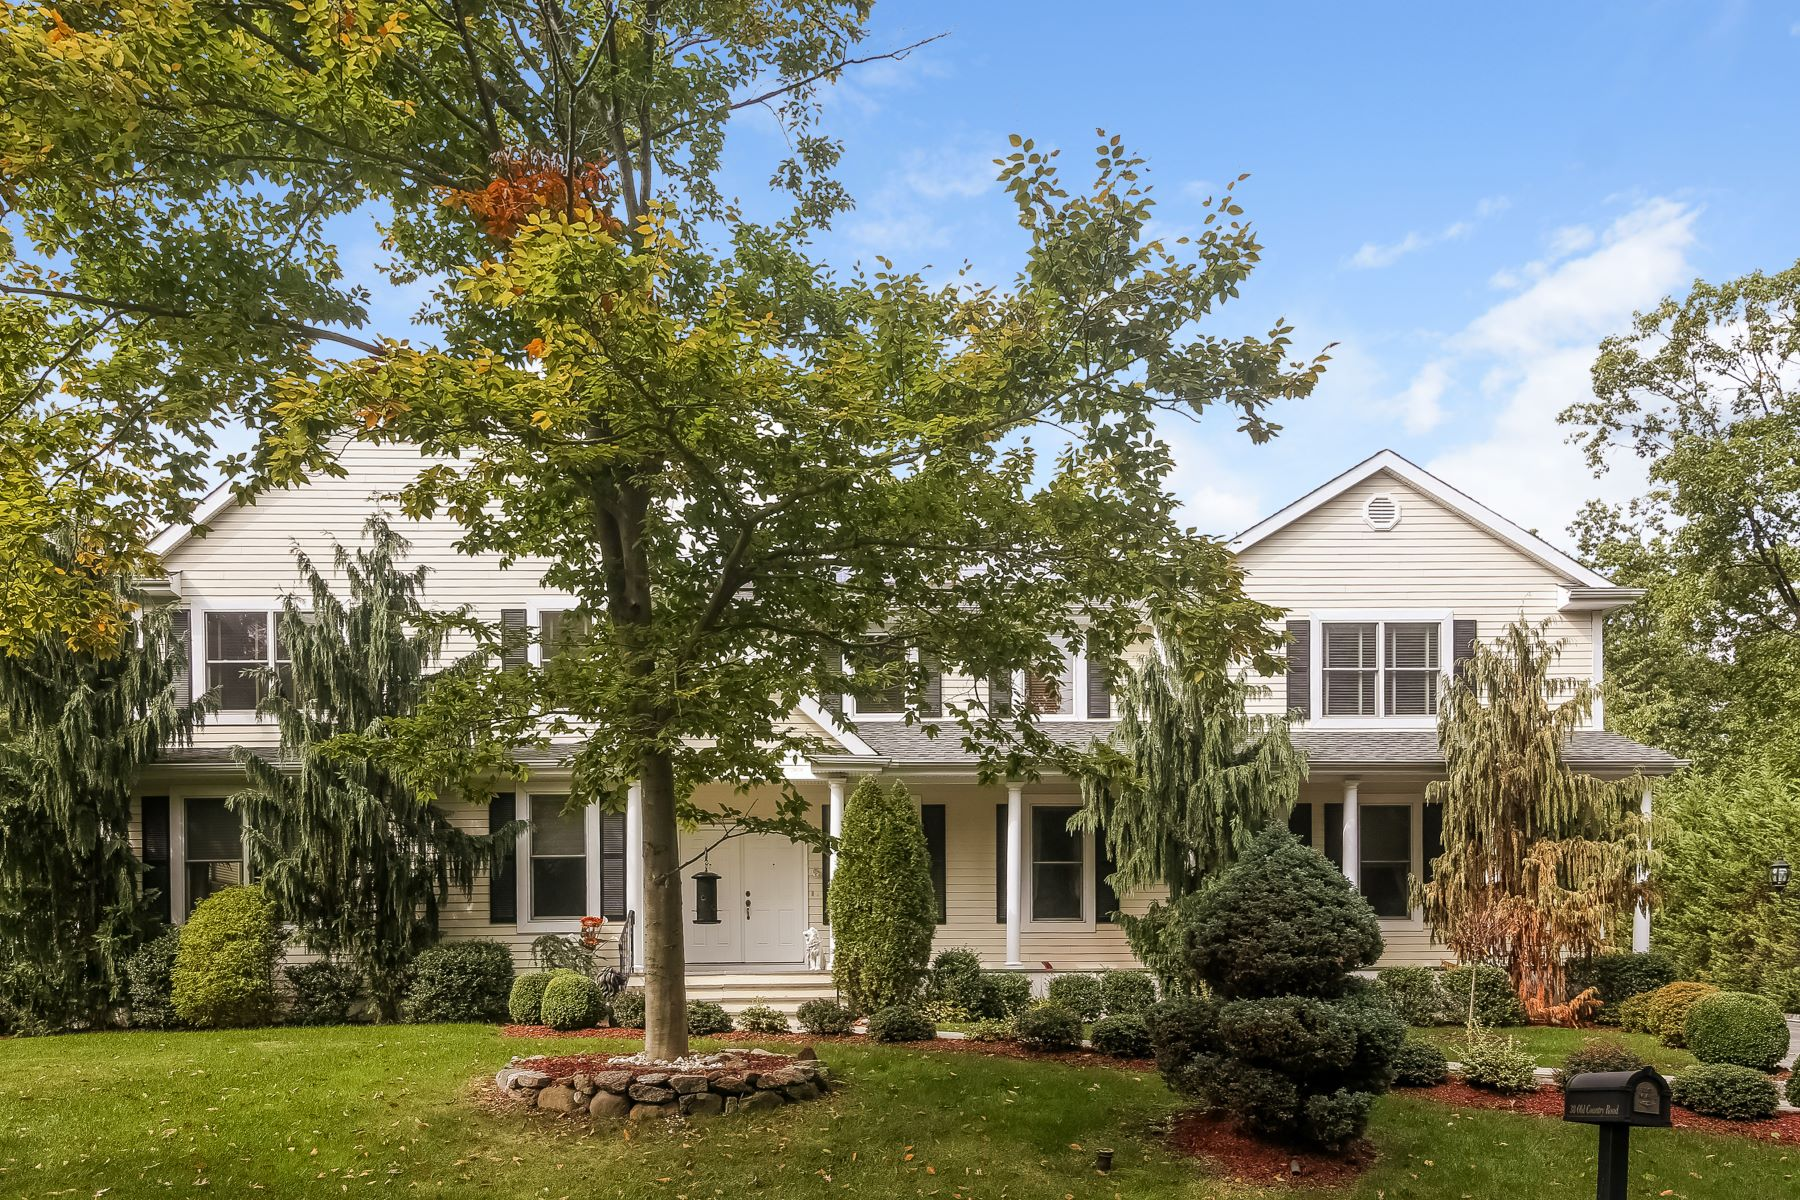 Single Family Home for Sale at Inviting Center Hall Colonial 38 Old Country Road New Rochelle, New York 10804 United States